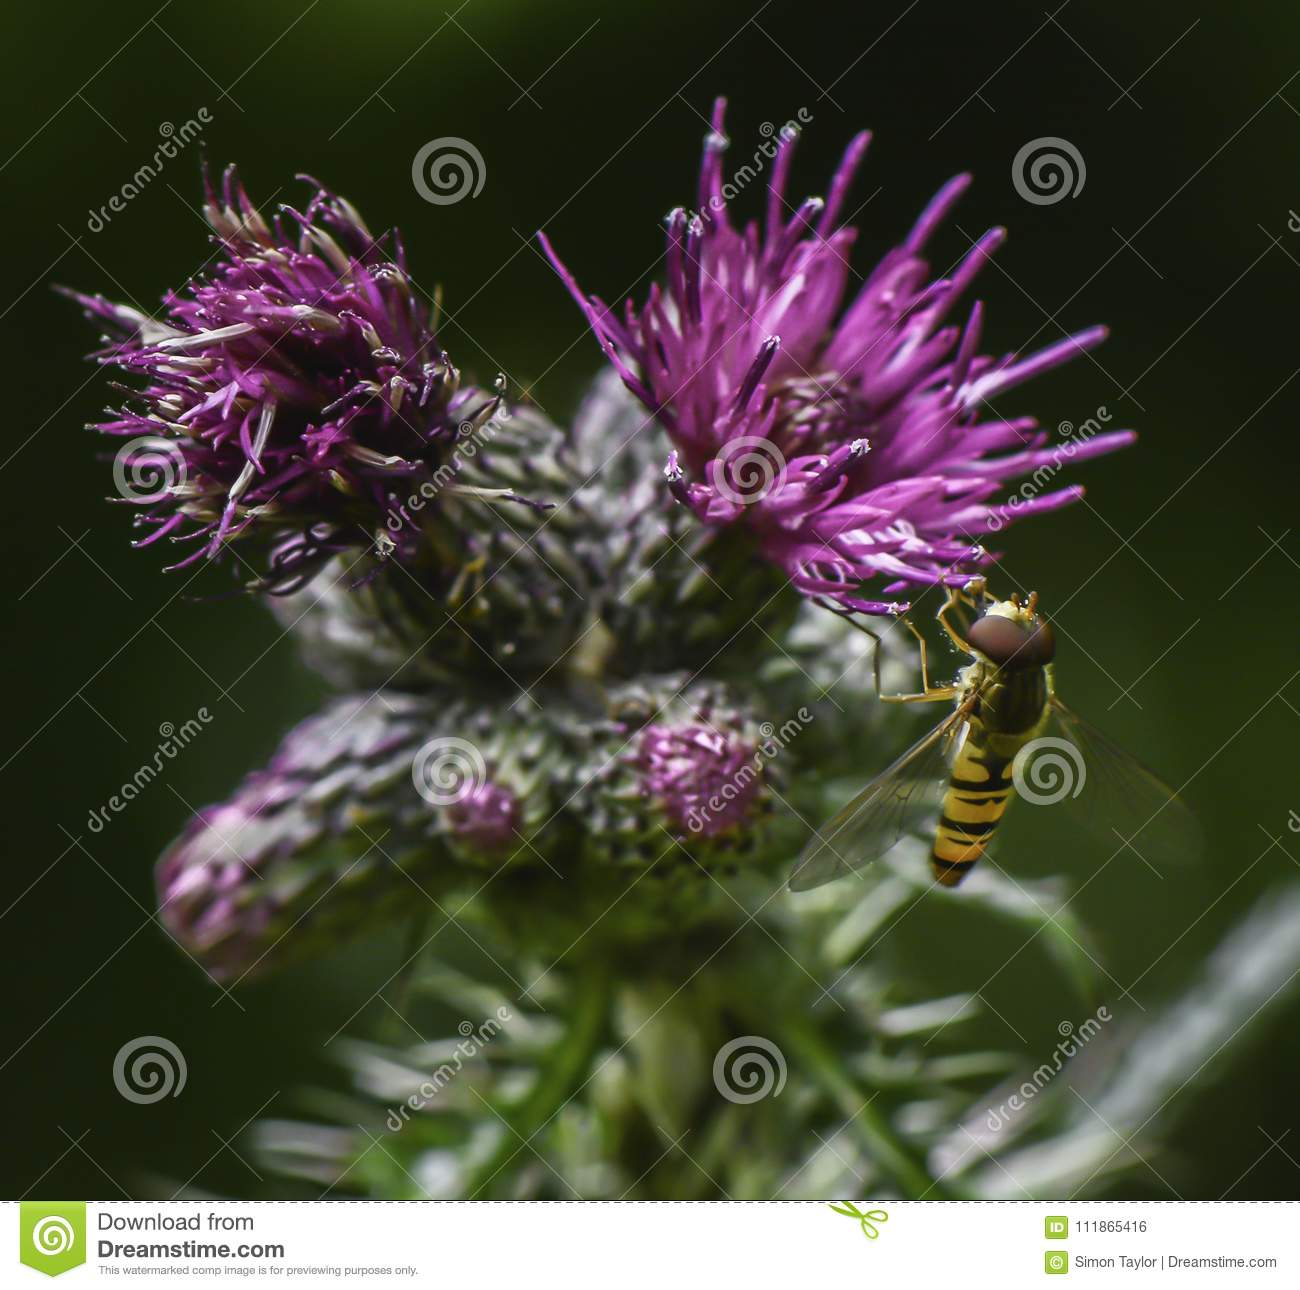 Bee on ultra violet coloured thistle